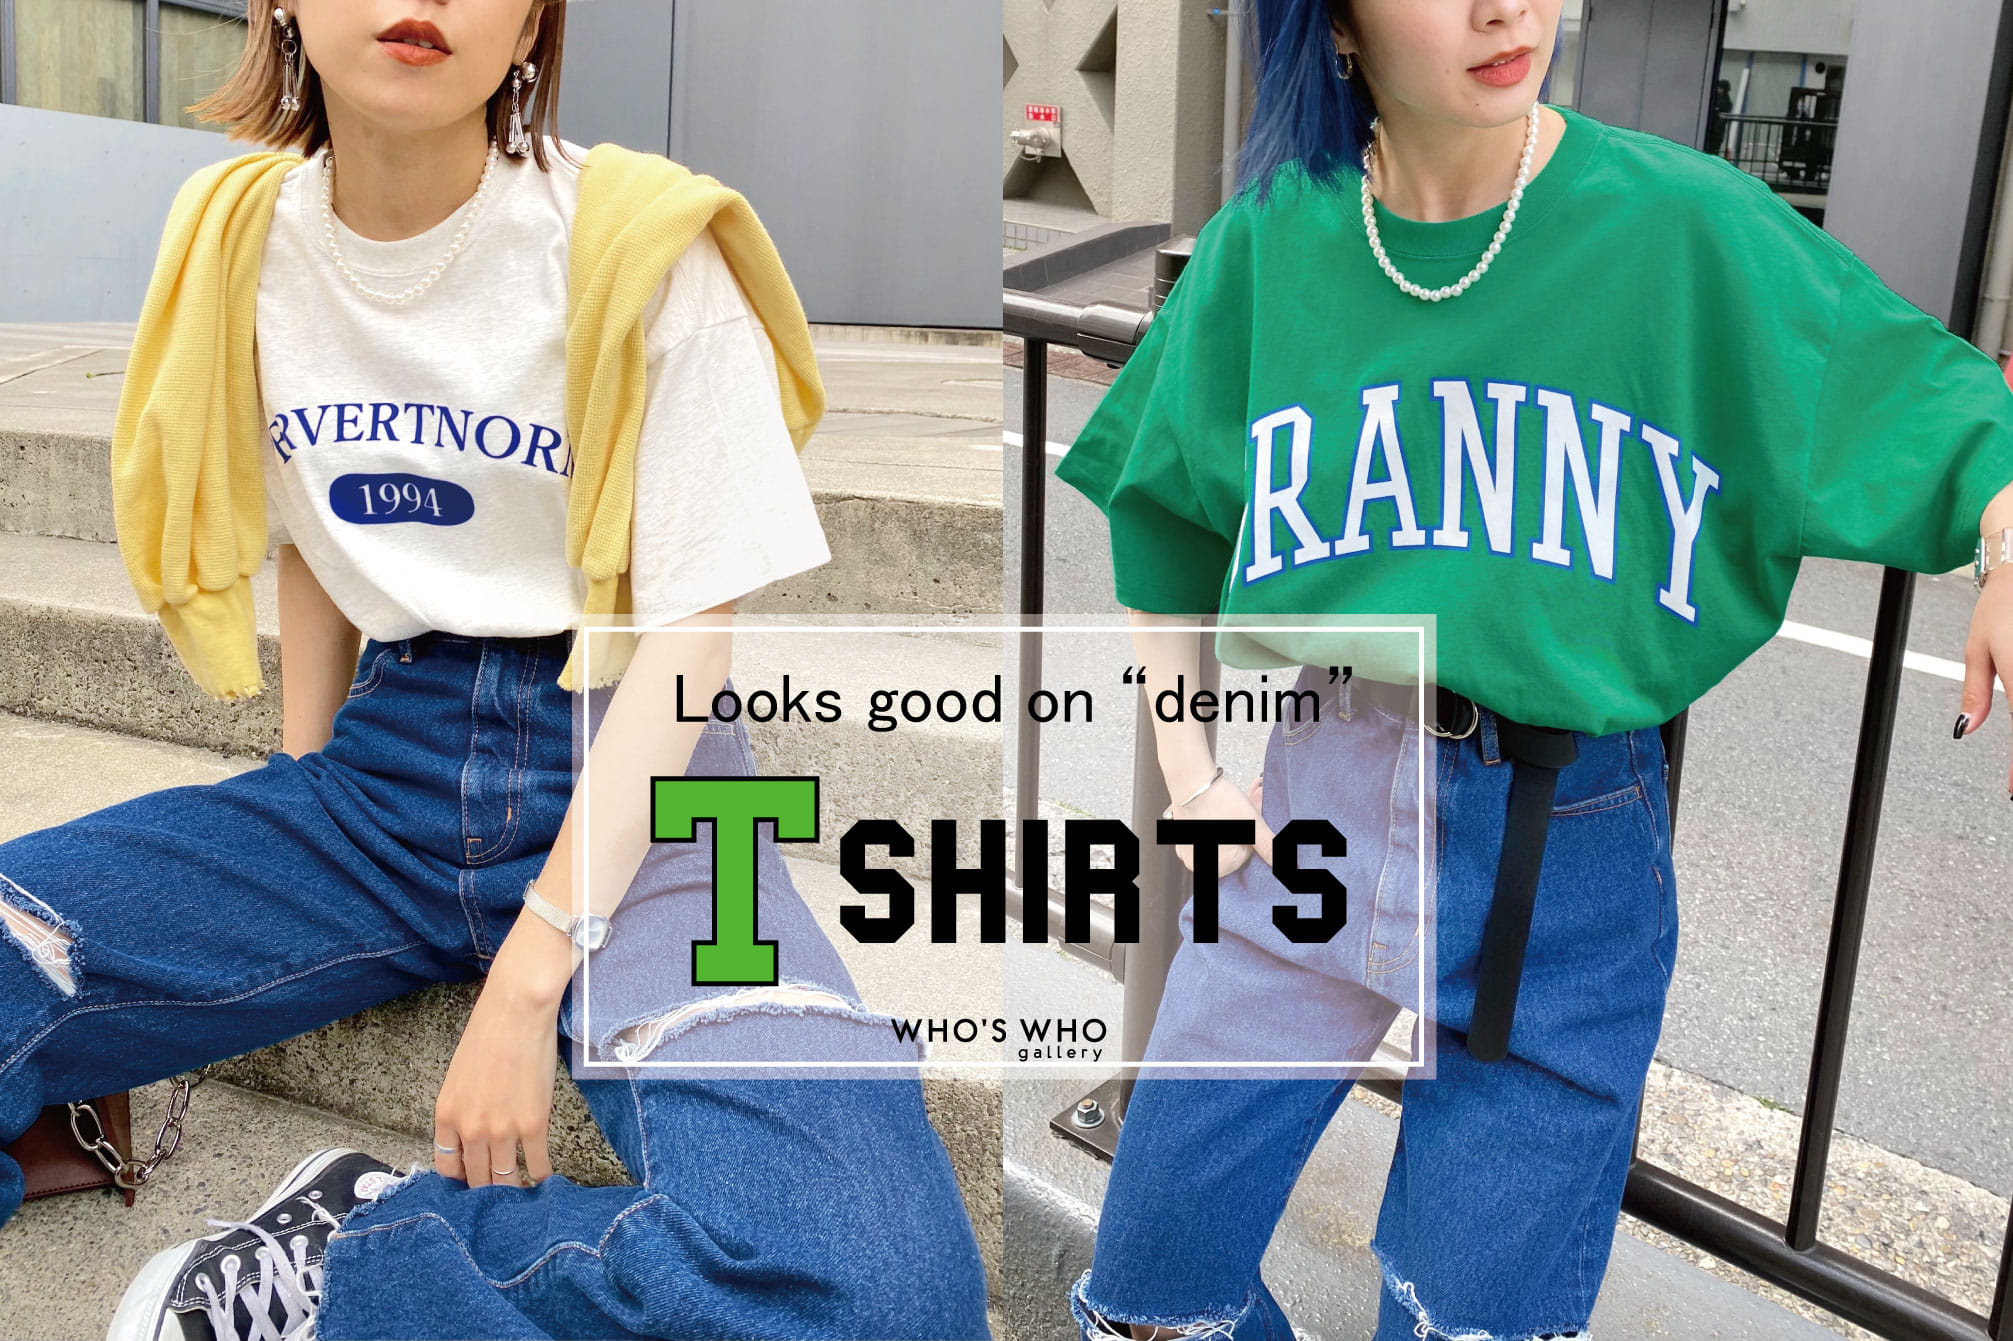 "WHO'S WHO gallery 【Looks good on denim ""Tshirts""】"